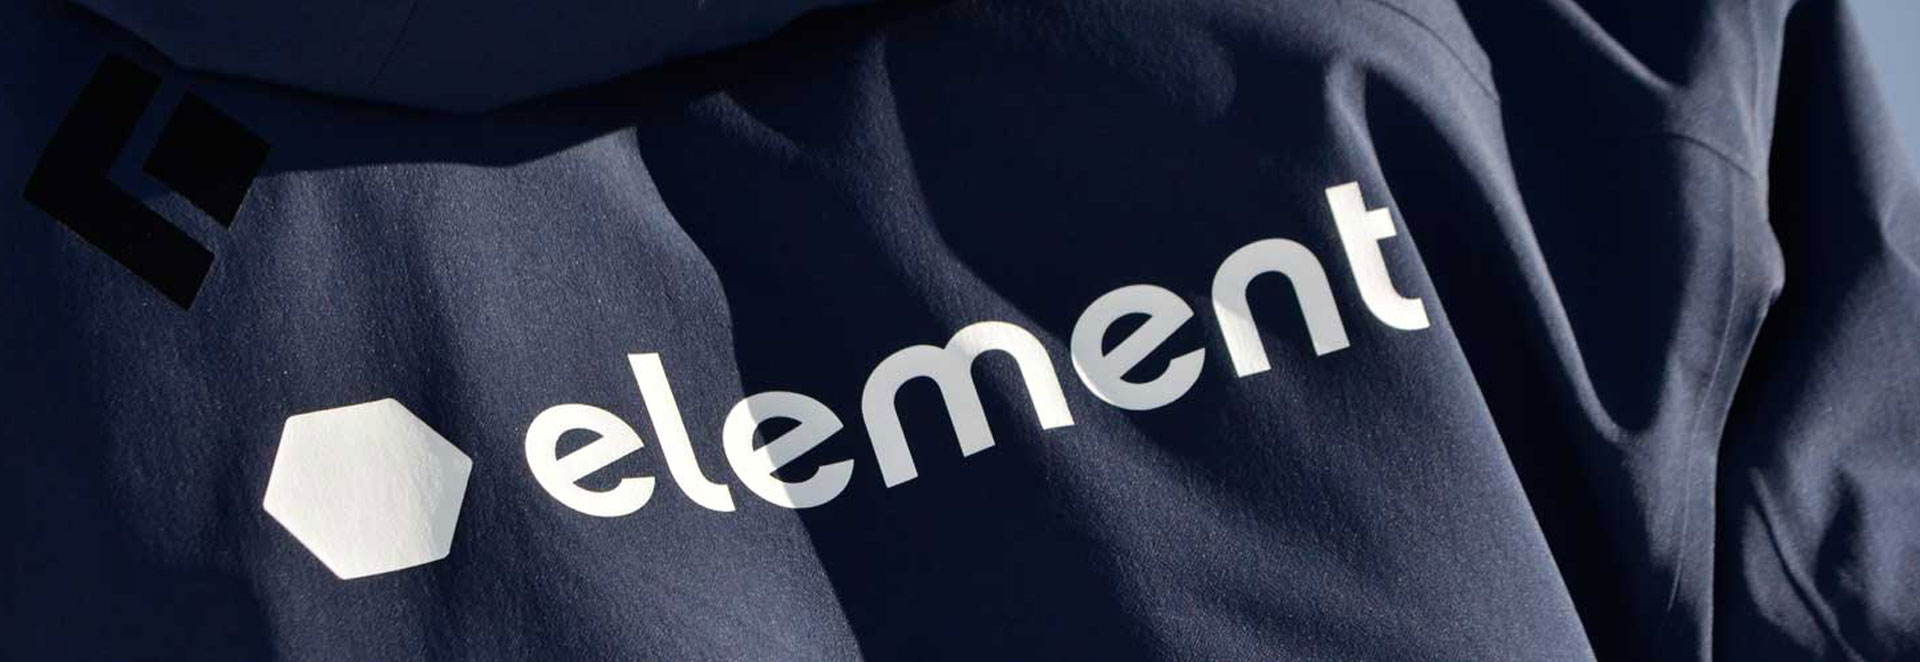 About Element ski school